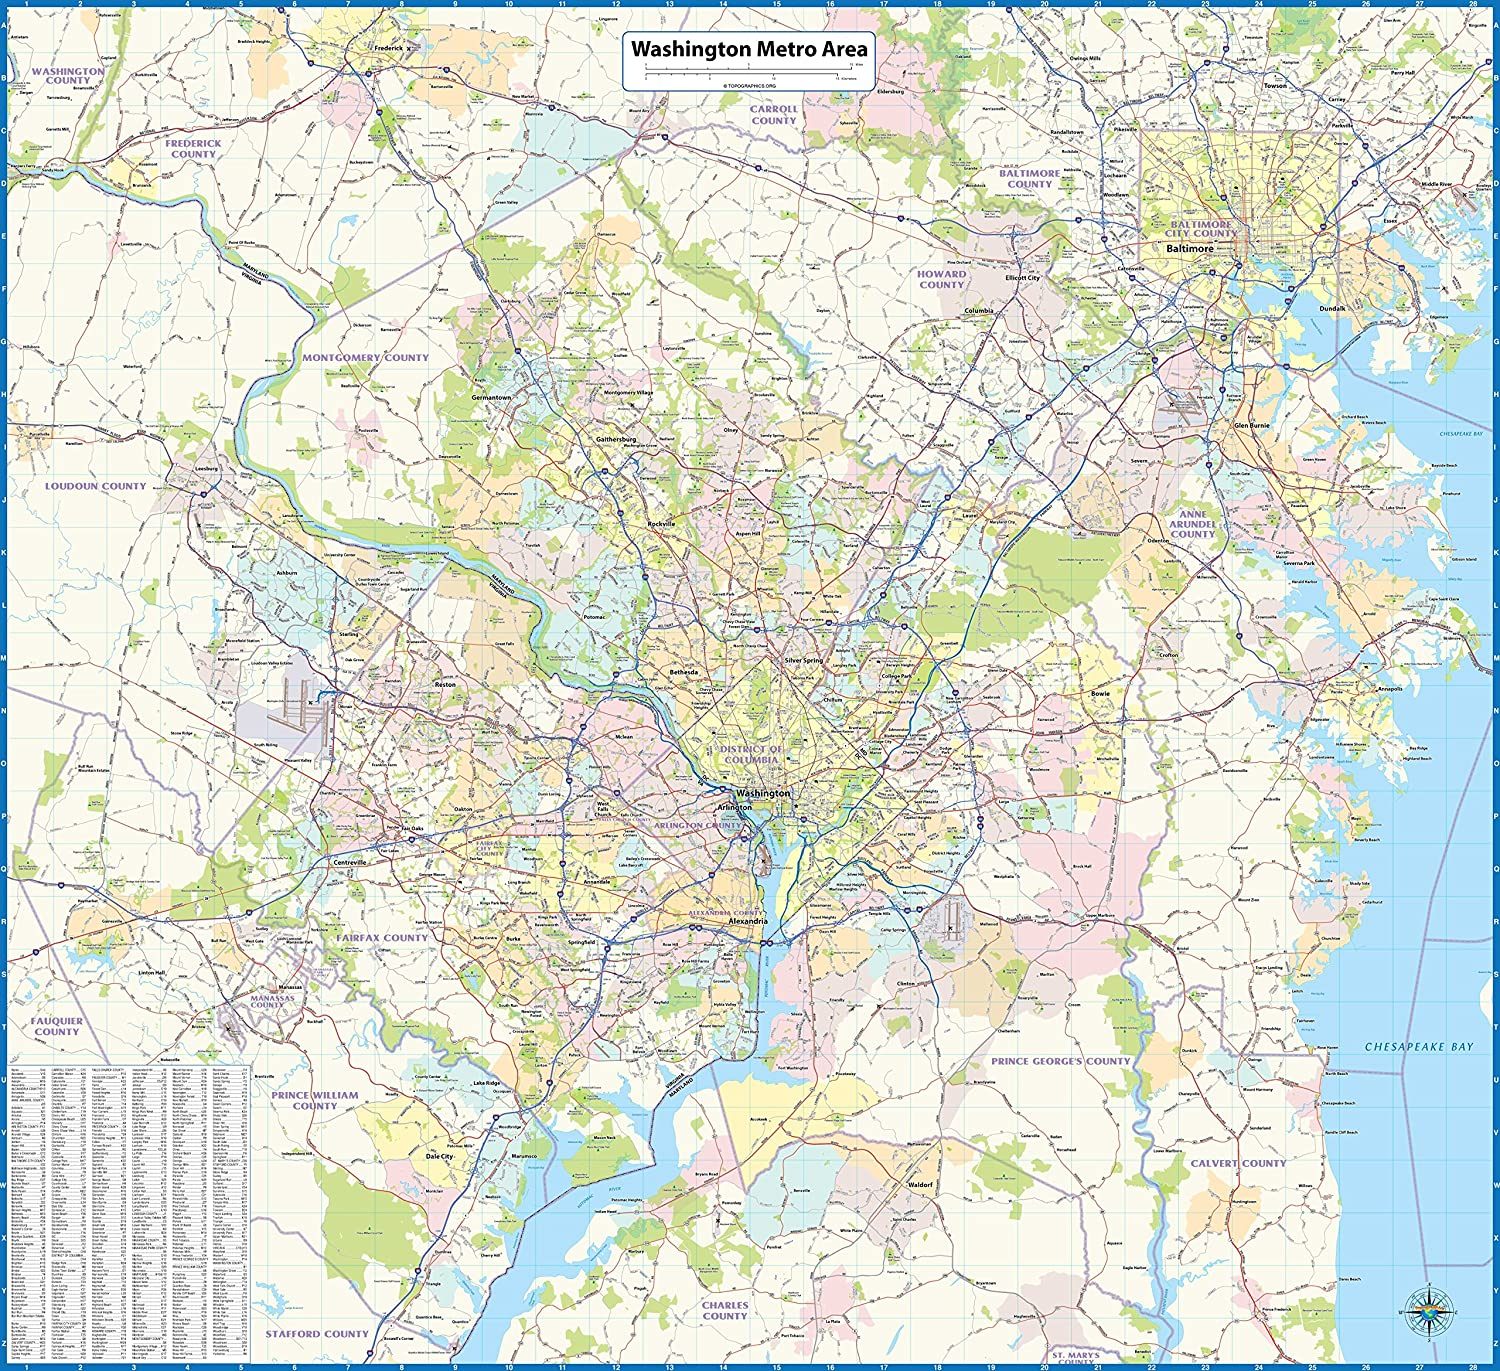 Map Of Washington Dc Area Amazon.: Washington DC Metro Area Laminated Wall Map : Office